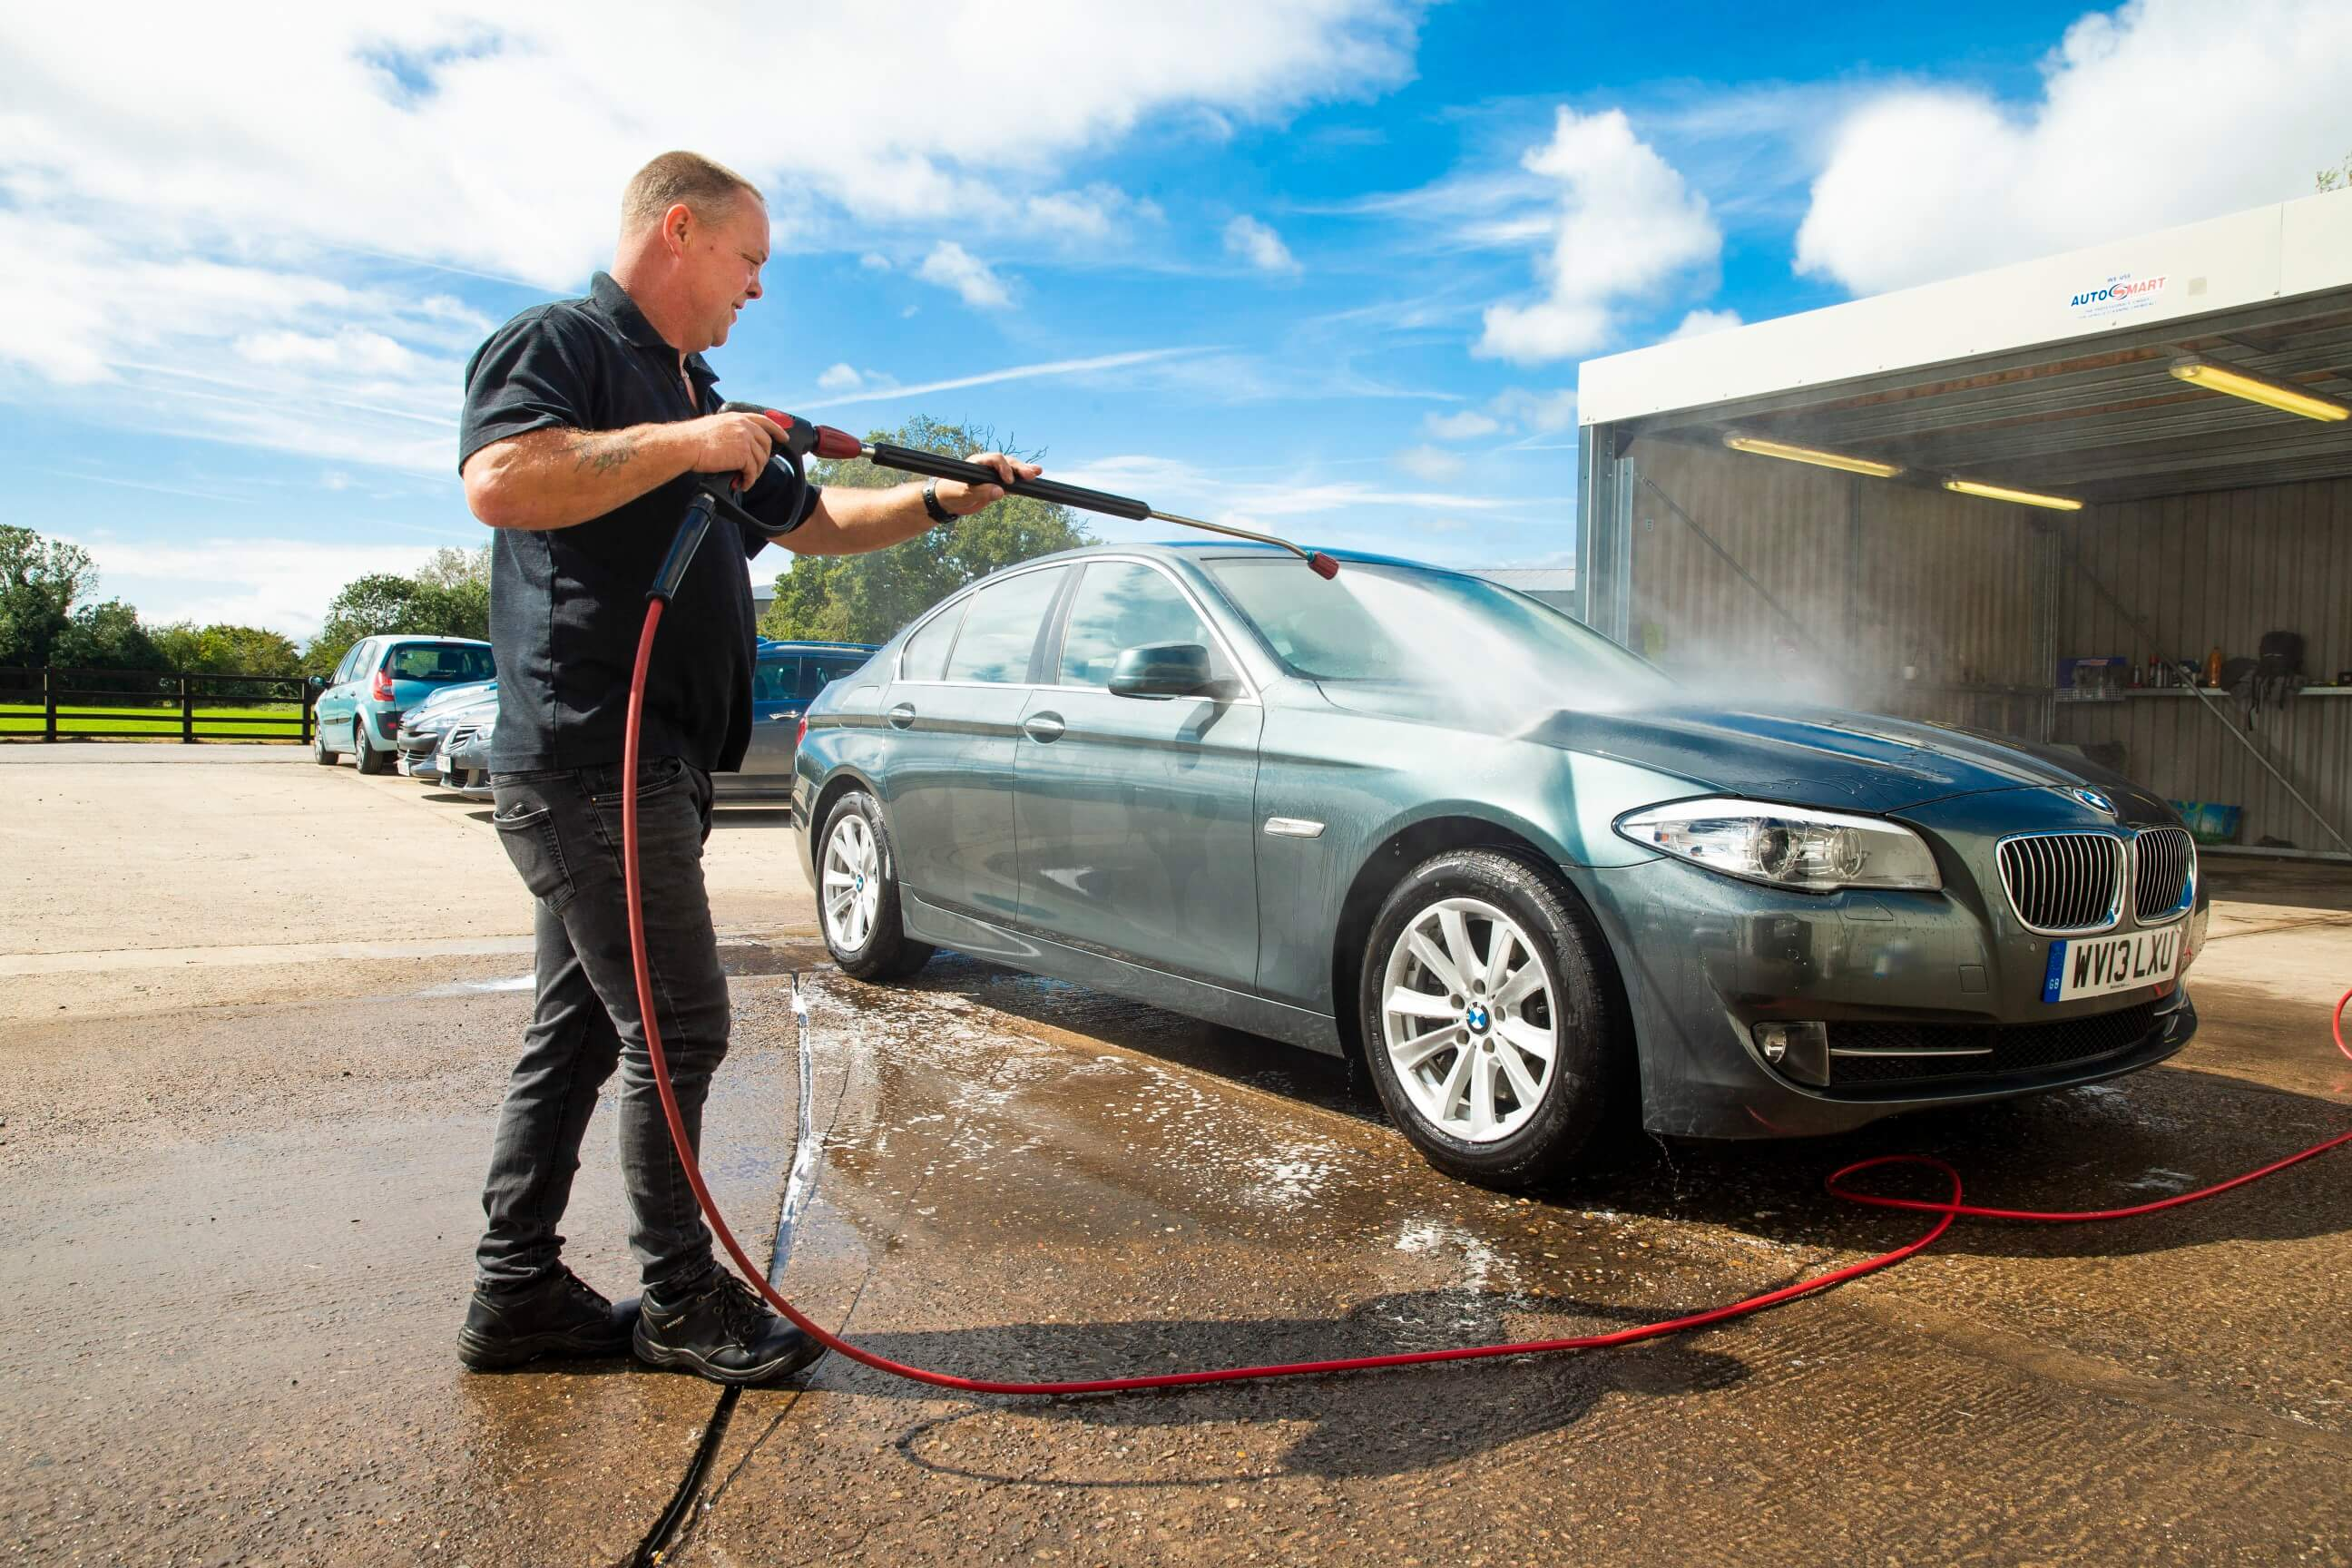 Car Undergoing Valeting At Gold Cars Used Cars For Sale In Evesham - Gold Cars Ltd